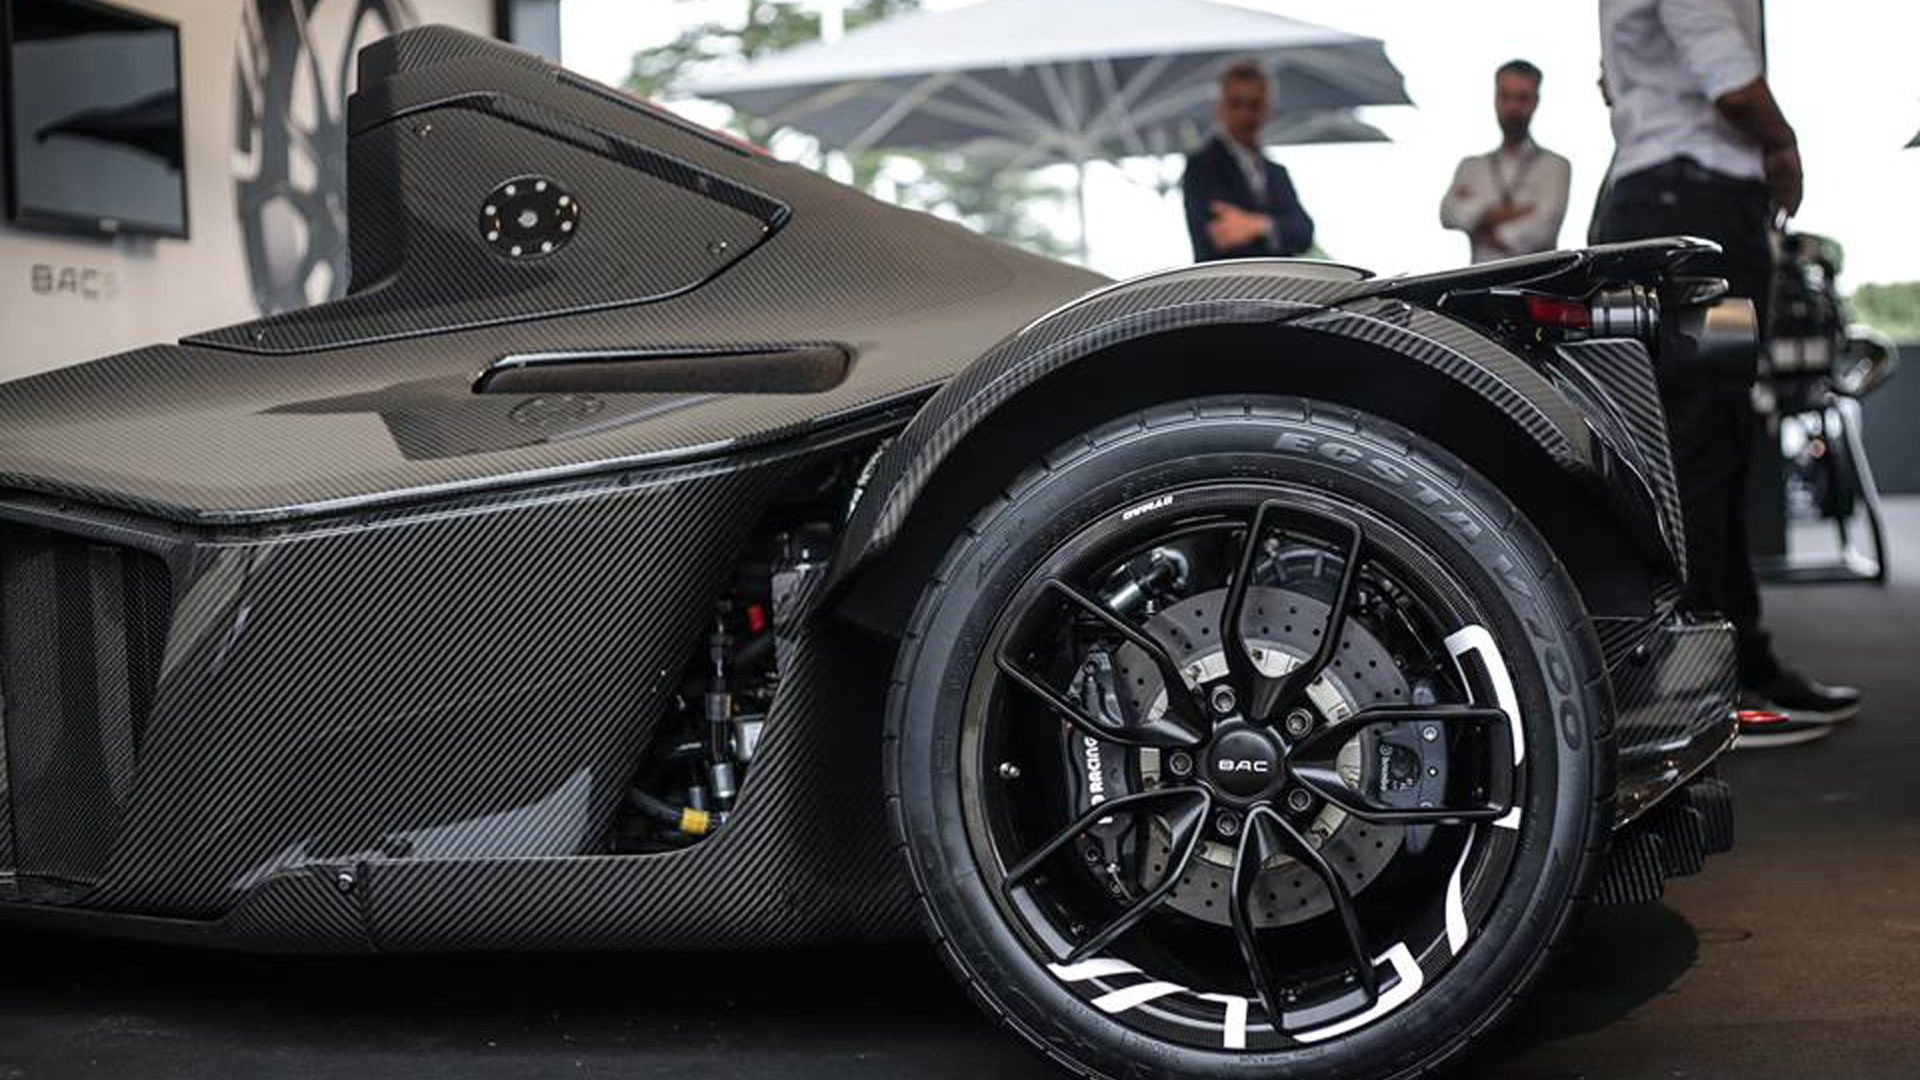 2016 BAC Mono fitted with rear wheel arches made from graphene